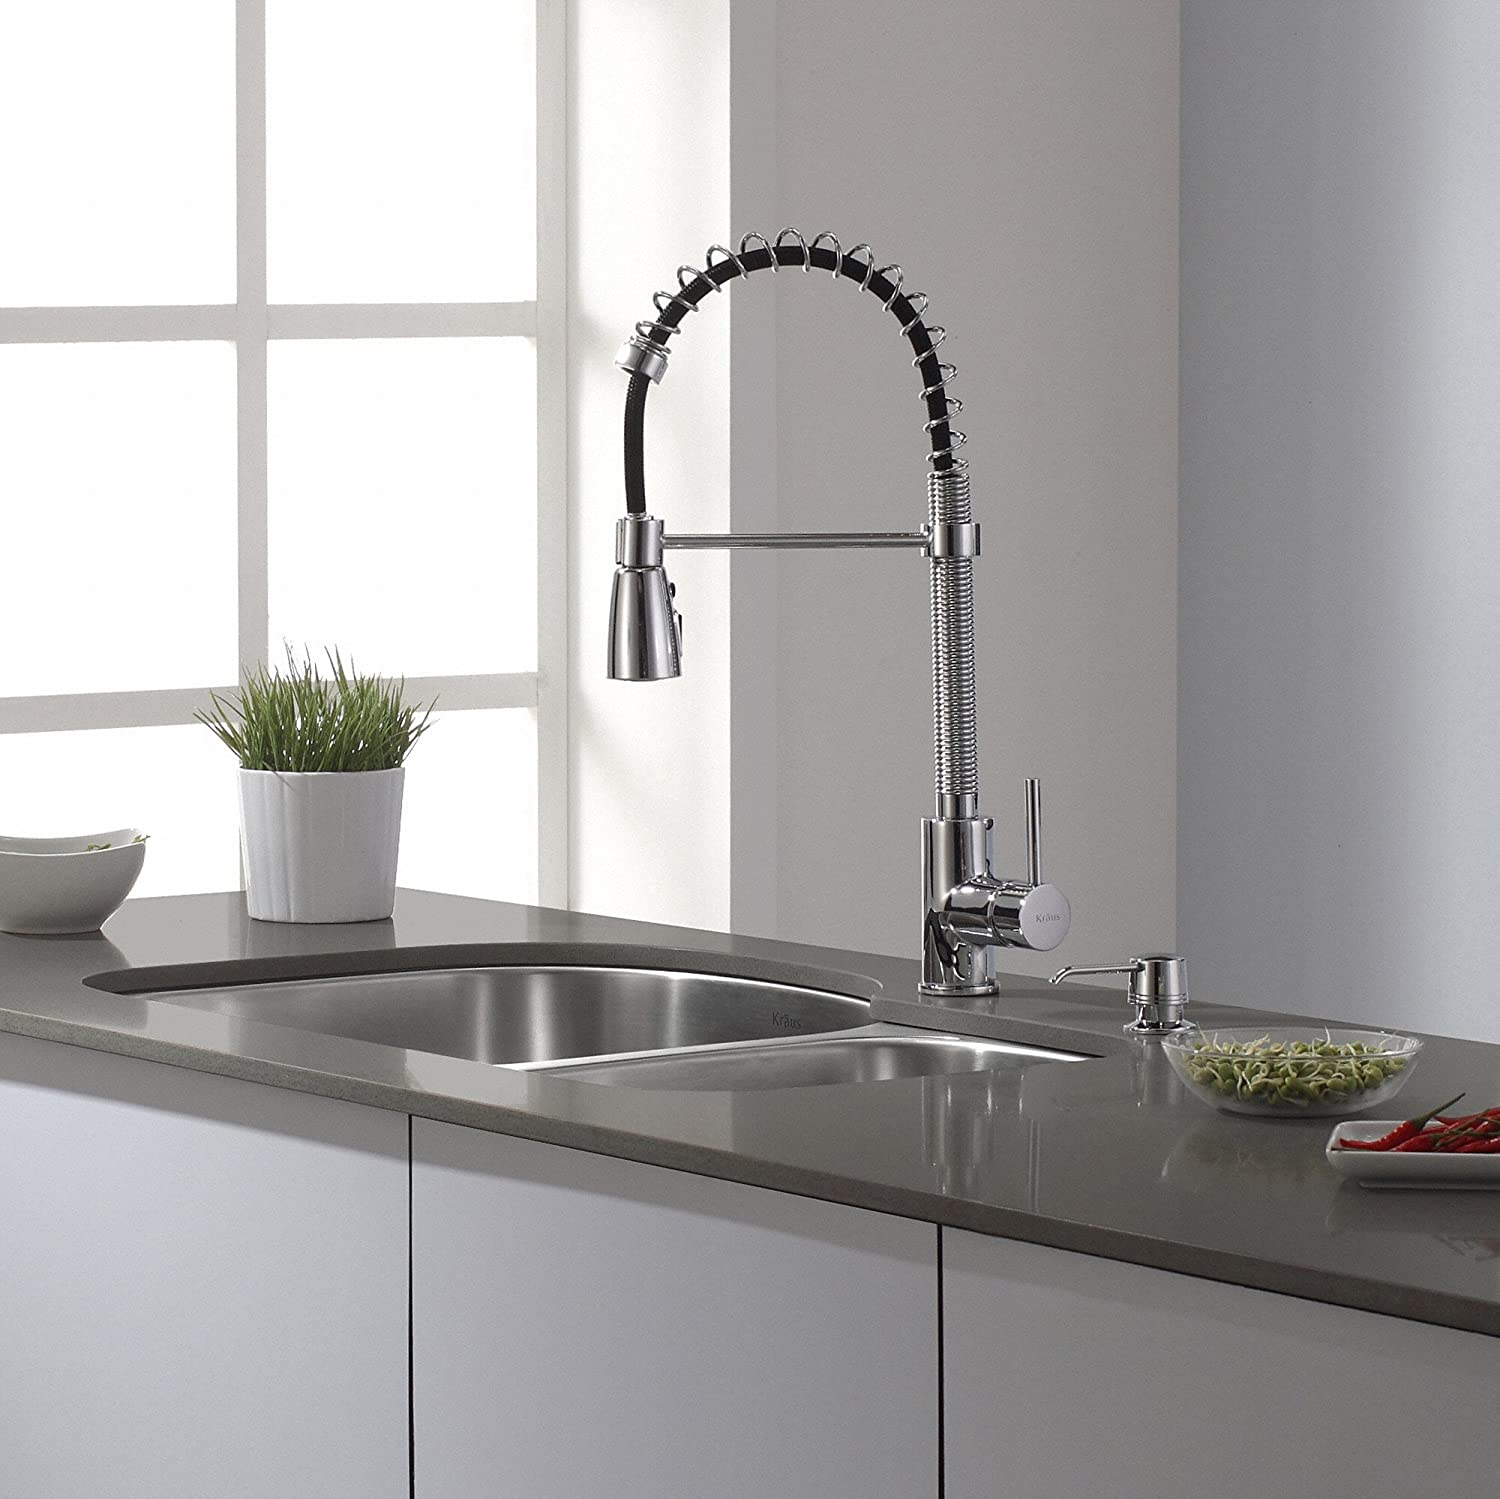 Etonnant Kraus KPF 1612 Single Lever Pull Down Kitchen Faucet Chrome   Touch On  Kitchen Sink Faucets   Amazon.com